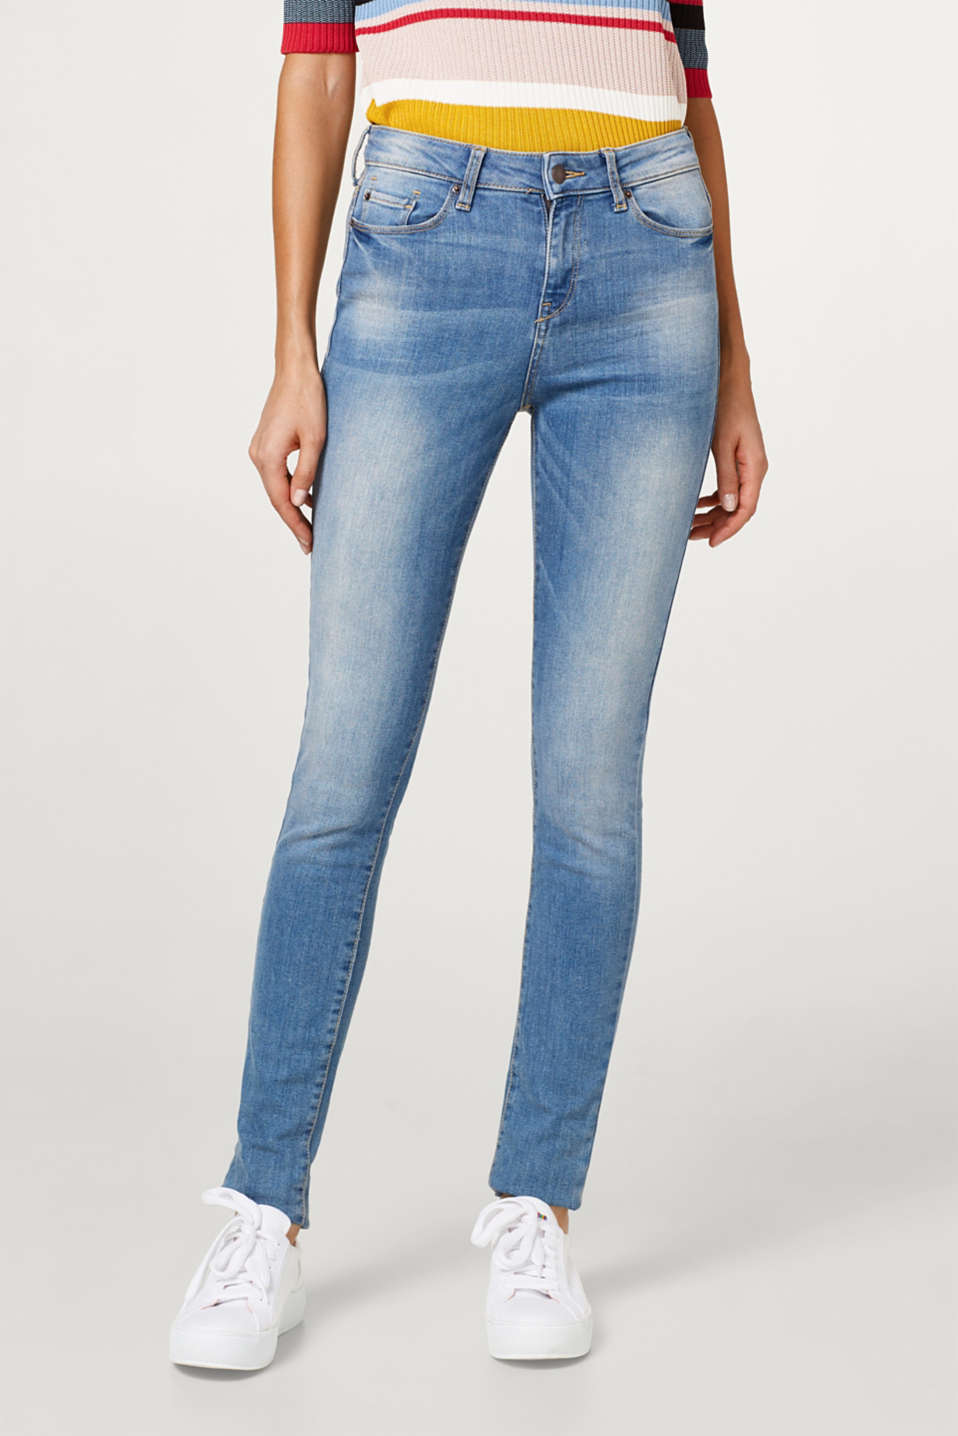 Esprit - High waist-jeans i afbleget denim